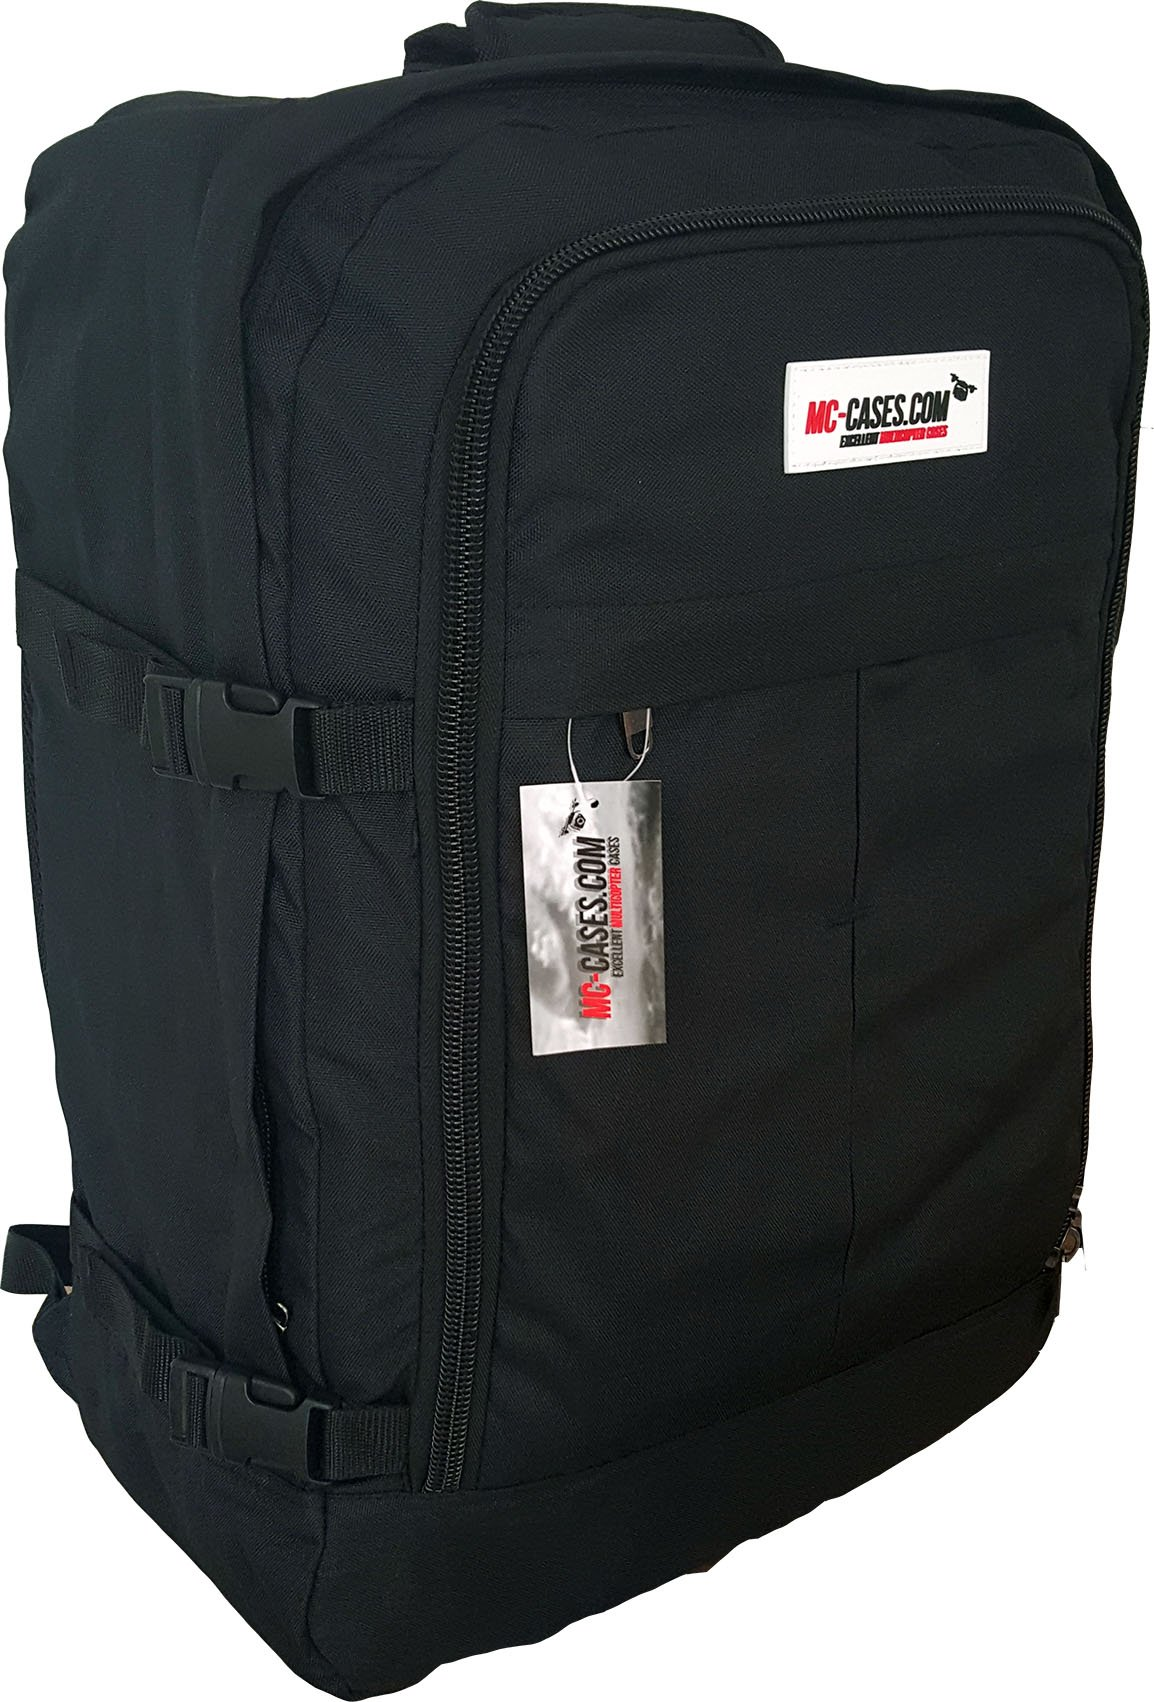 mc-cases Professionell Backpack Fits for DJI Ronin M! Hand Luggage! Super Light and Spacious!